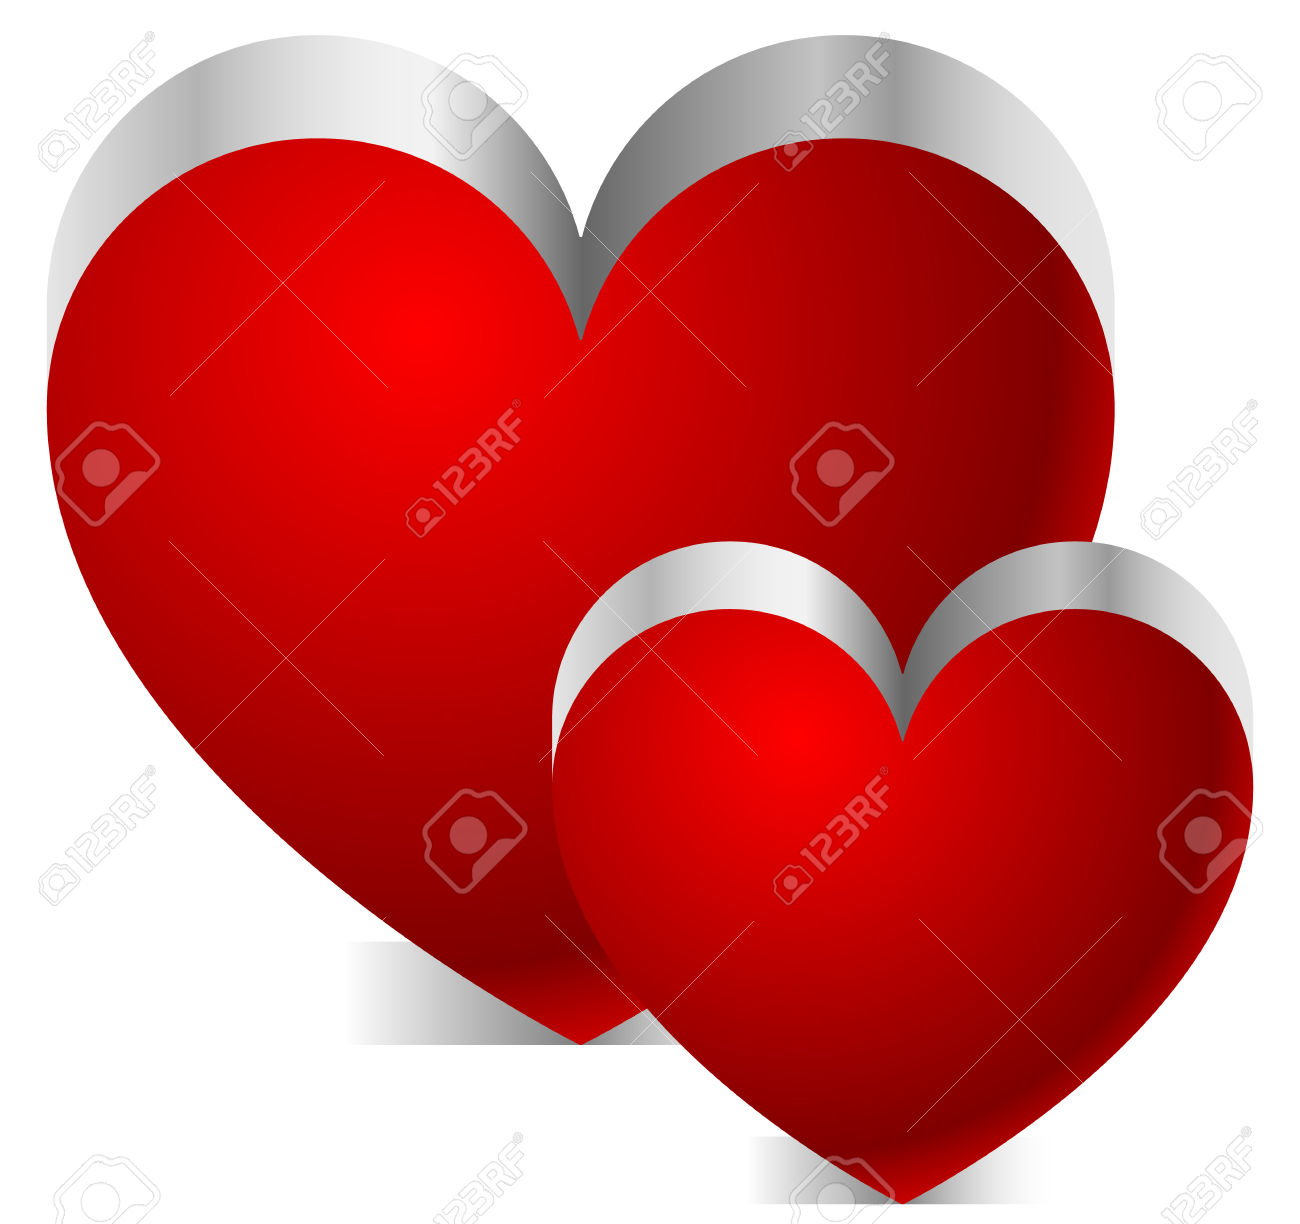 Hearts with shadow background clipart clipart transparent stock Two 3d Hearts With Shadow On White Background Royalty Free ... clipart transparent stock